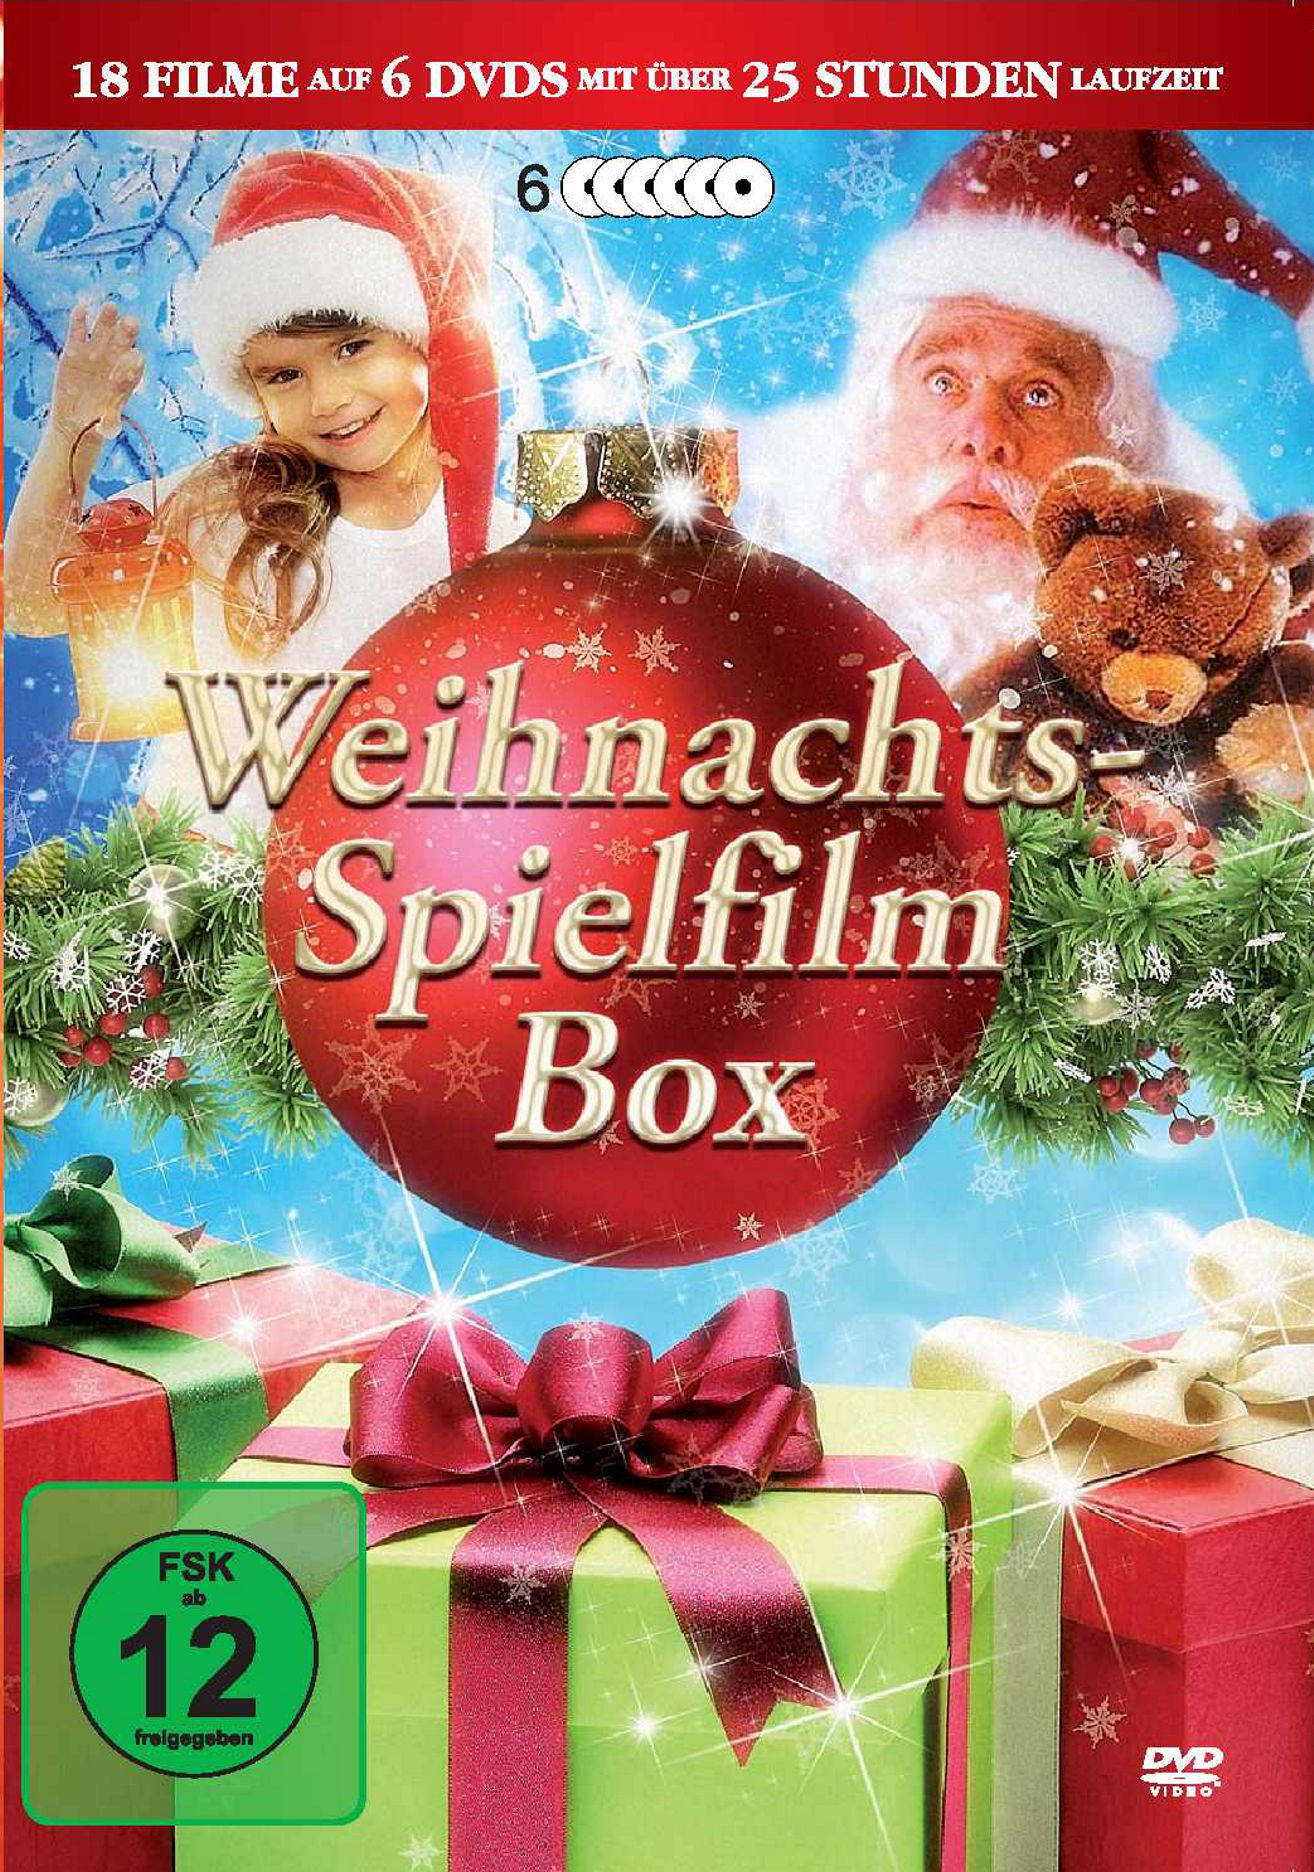 weihnachts spielfilm box die geschenk idee 18 filme. Black Bedroom Furniture Sets. Home Design Ideas